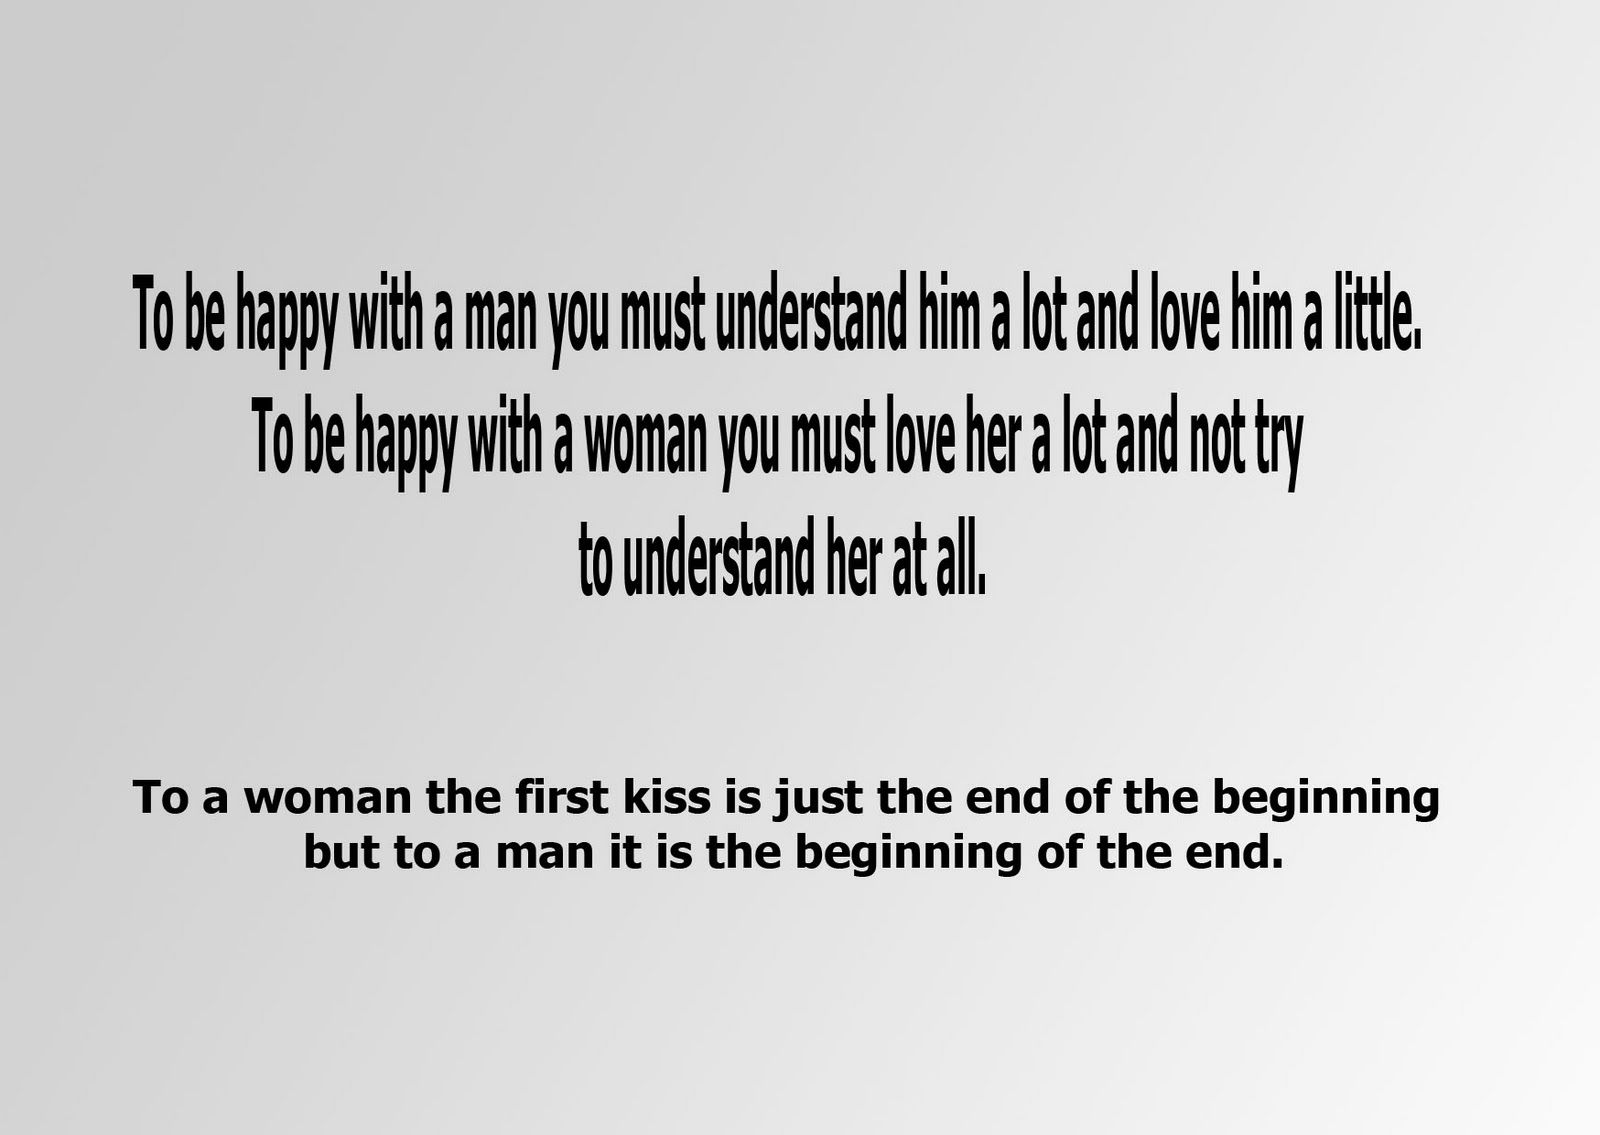 Quotes About Men Good Old Sayings And Quotes  30 Men's Quotes  Good Advice